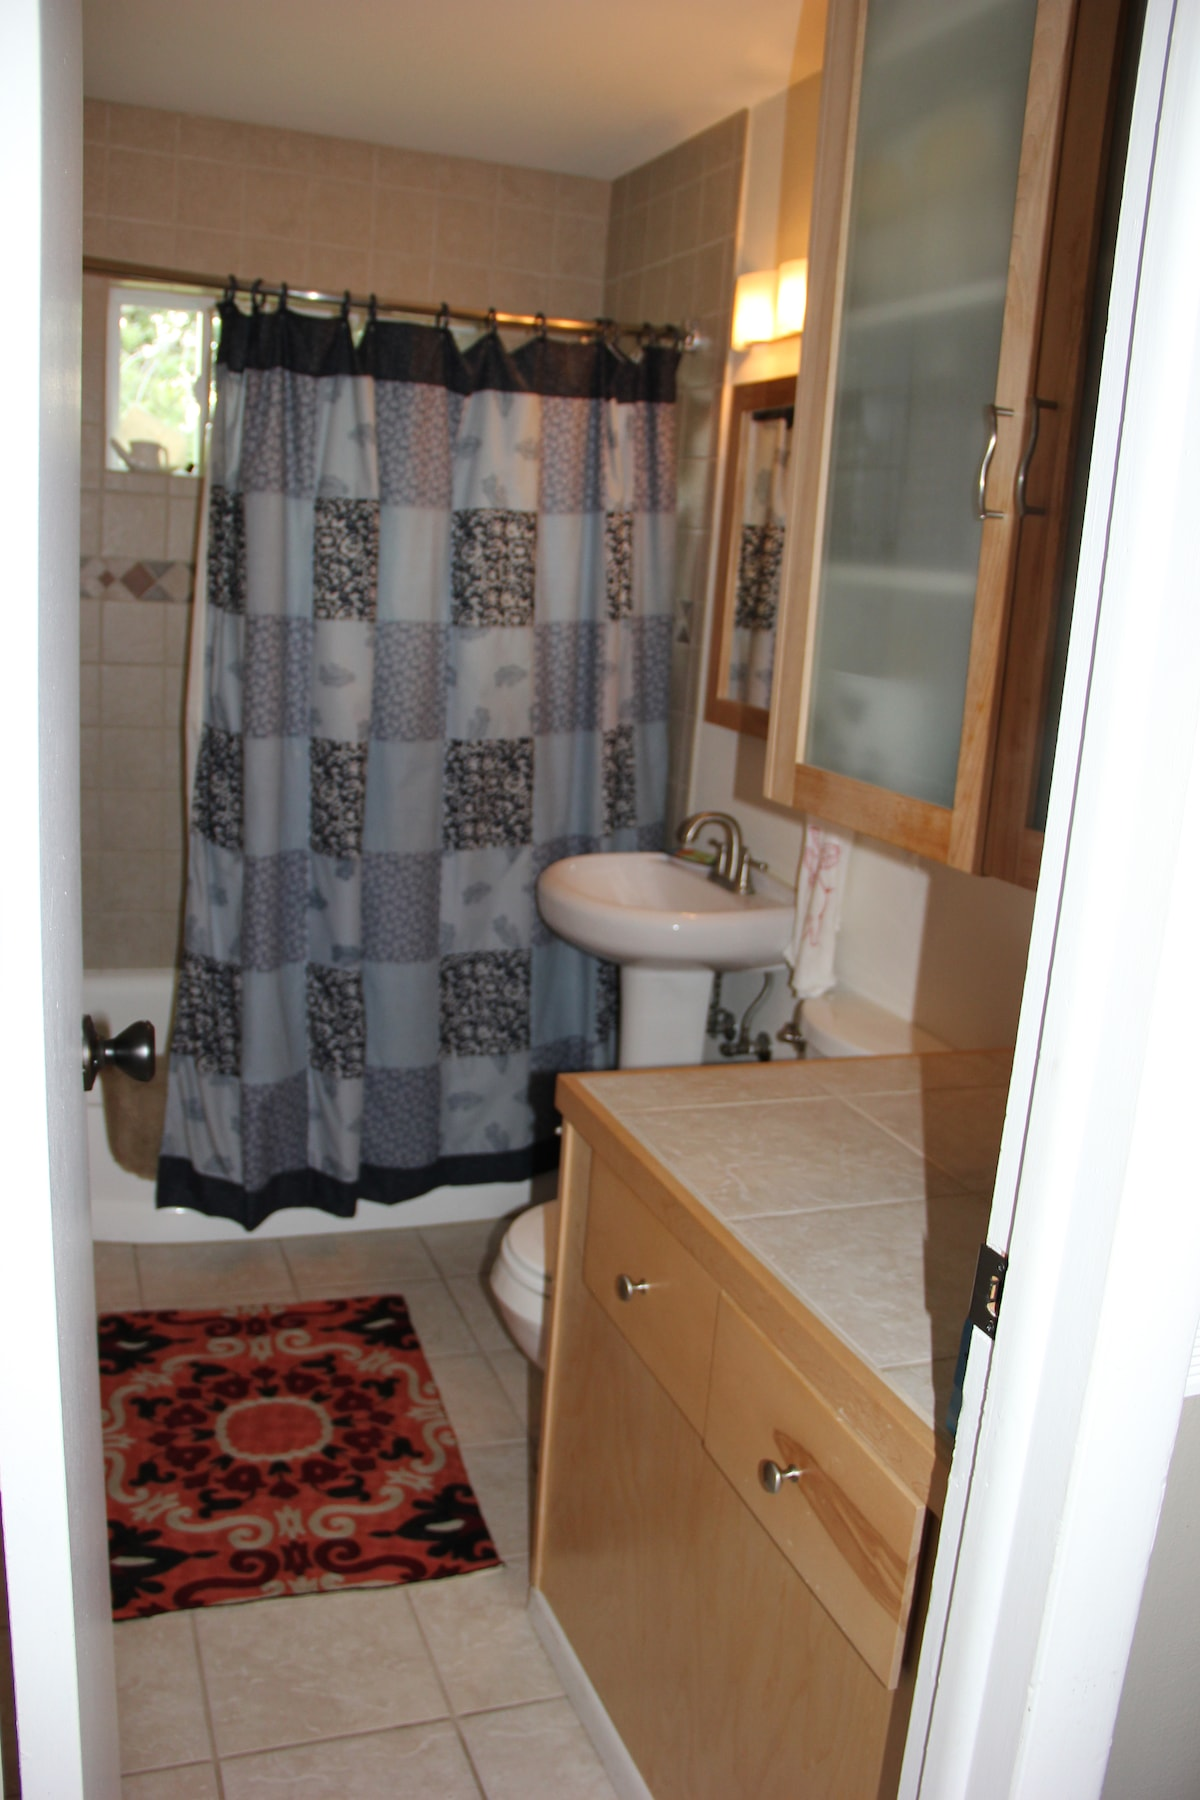 Refinished, clean bathroom